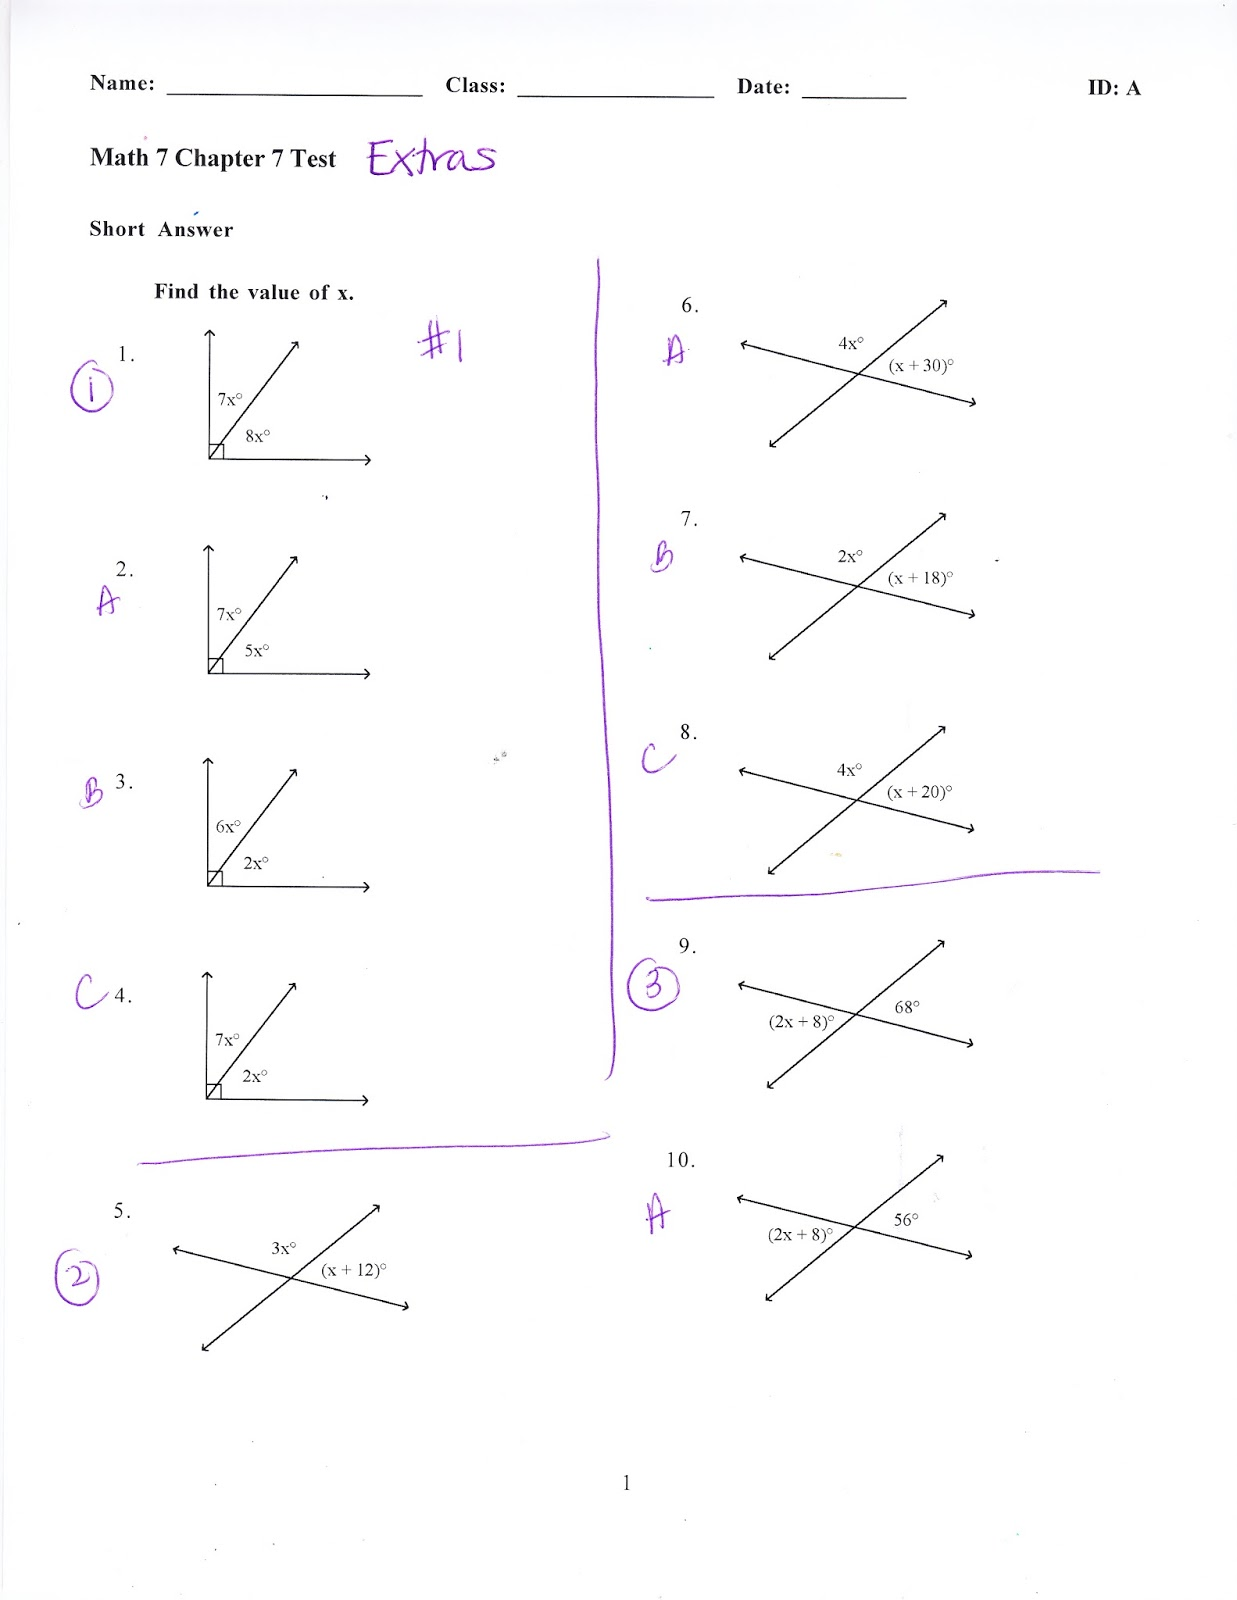 Ms. Jean's Classroom Blog: Math 7 Chapter 7 Test EXTRAS